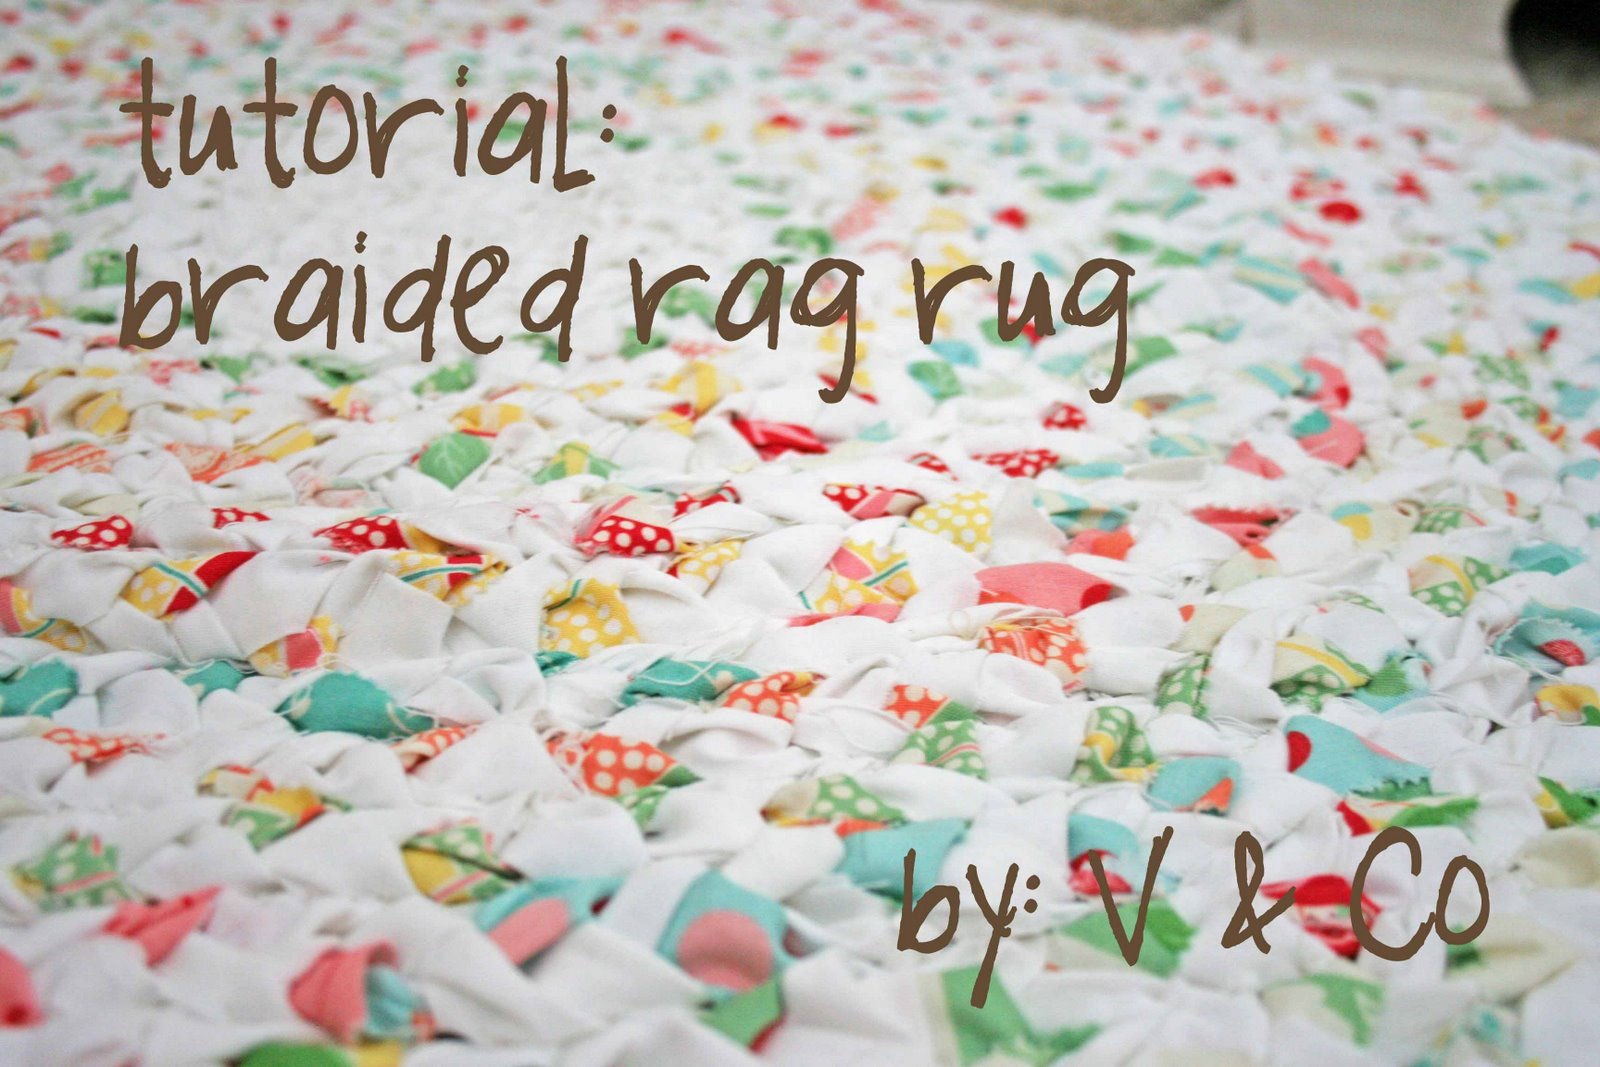 Fabric Rug Making Braided Rag Rug Moda Bake Shop